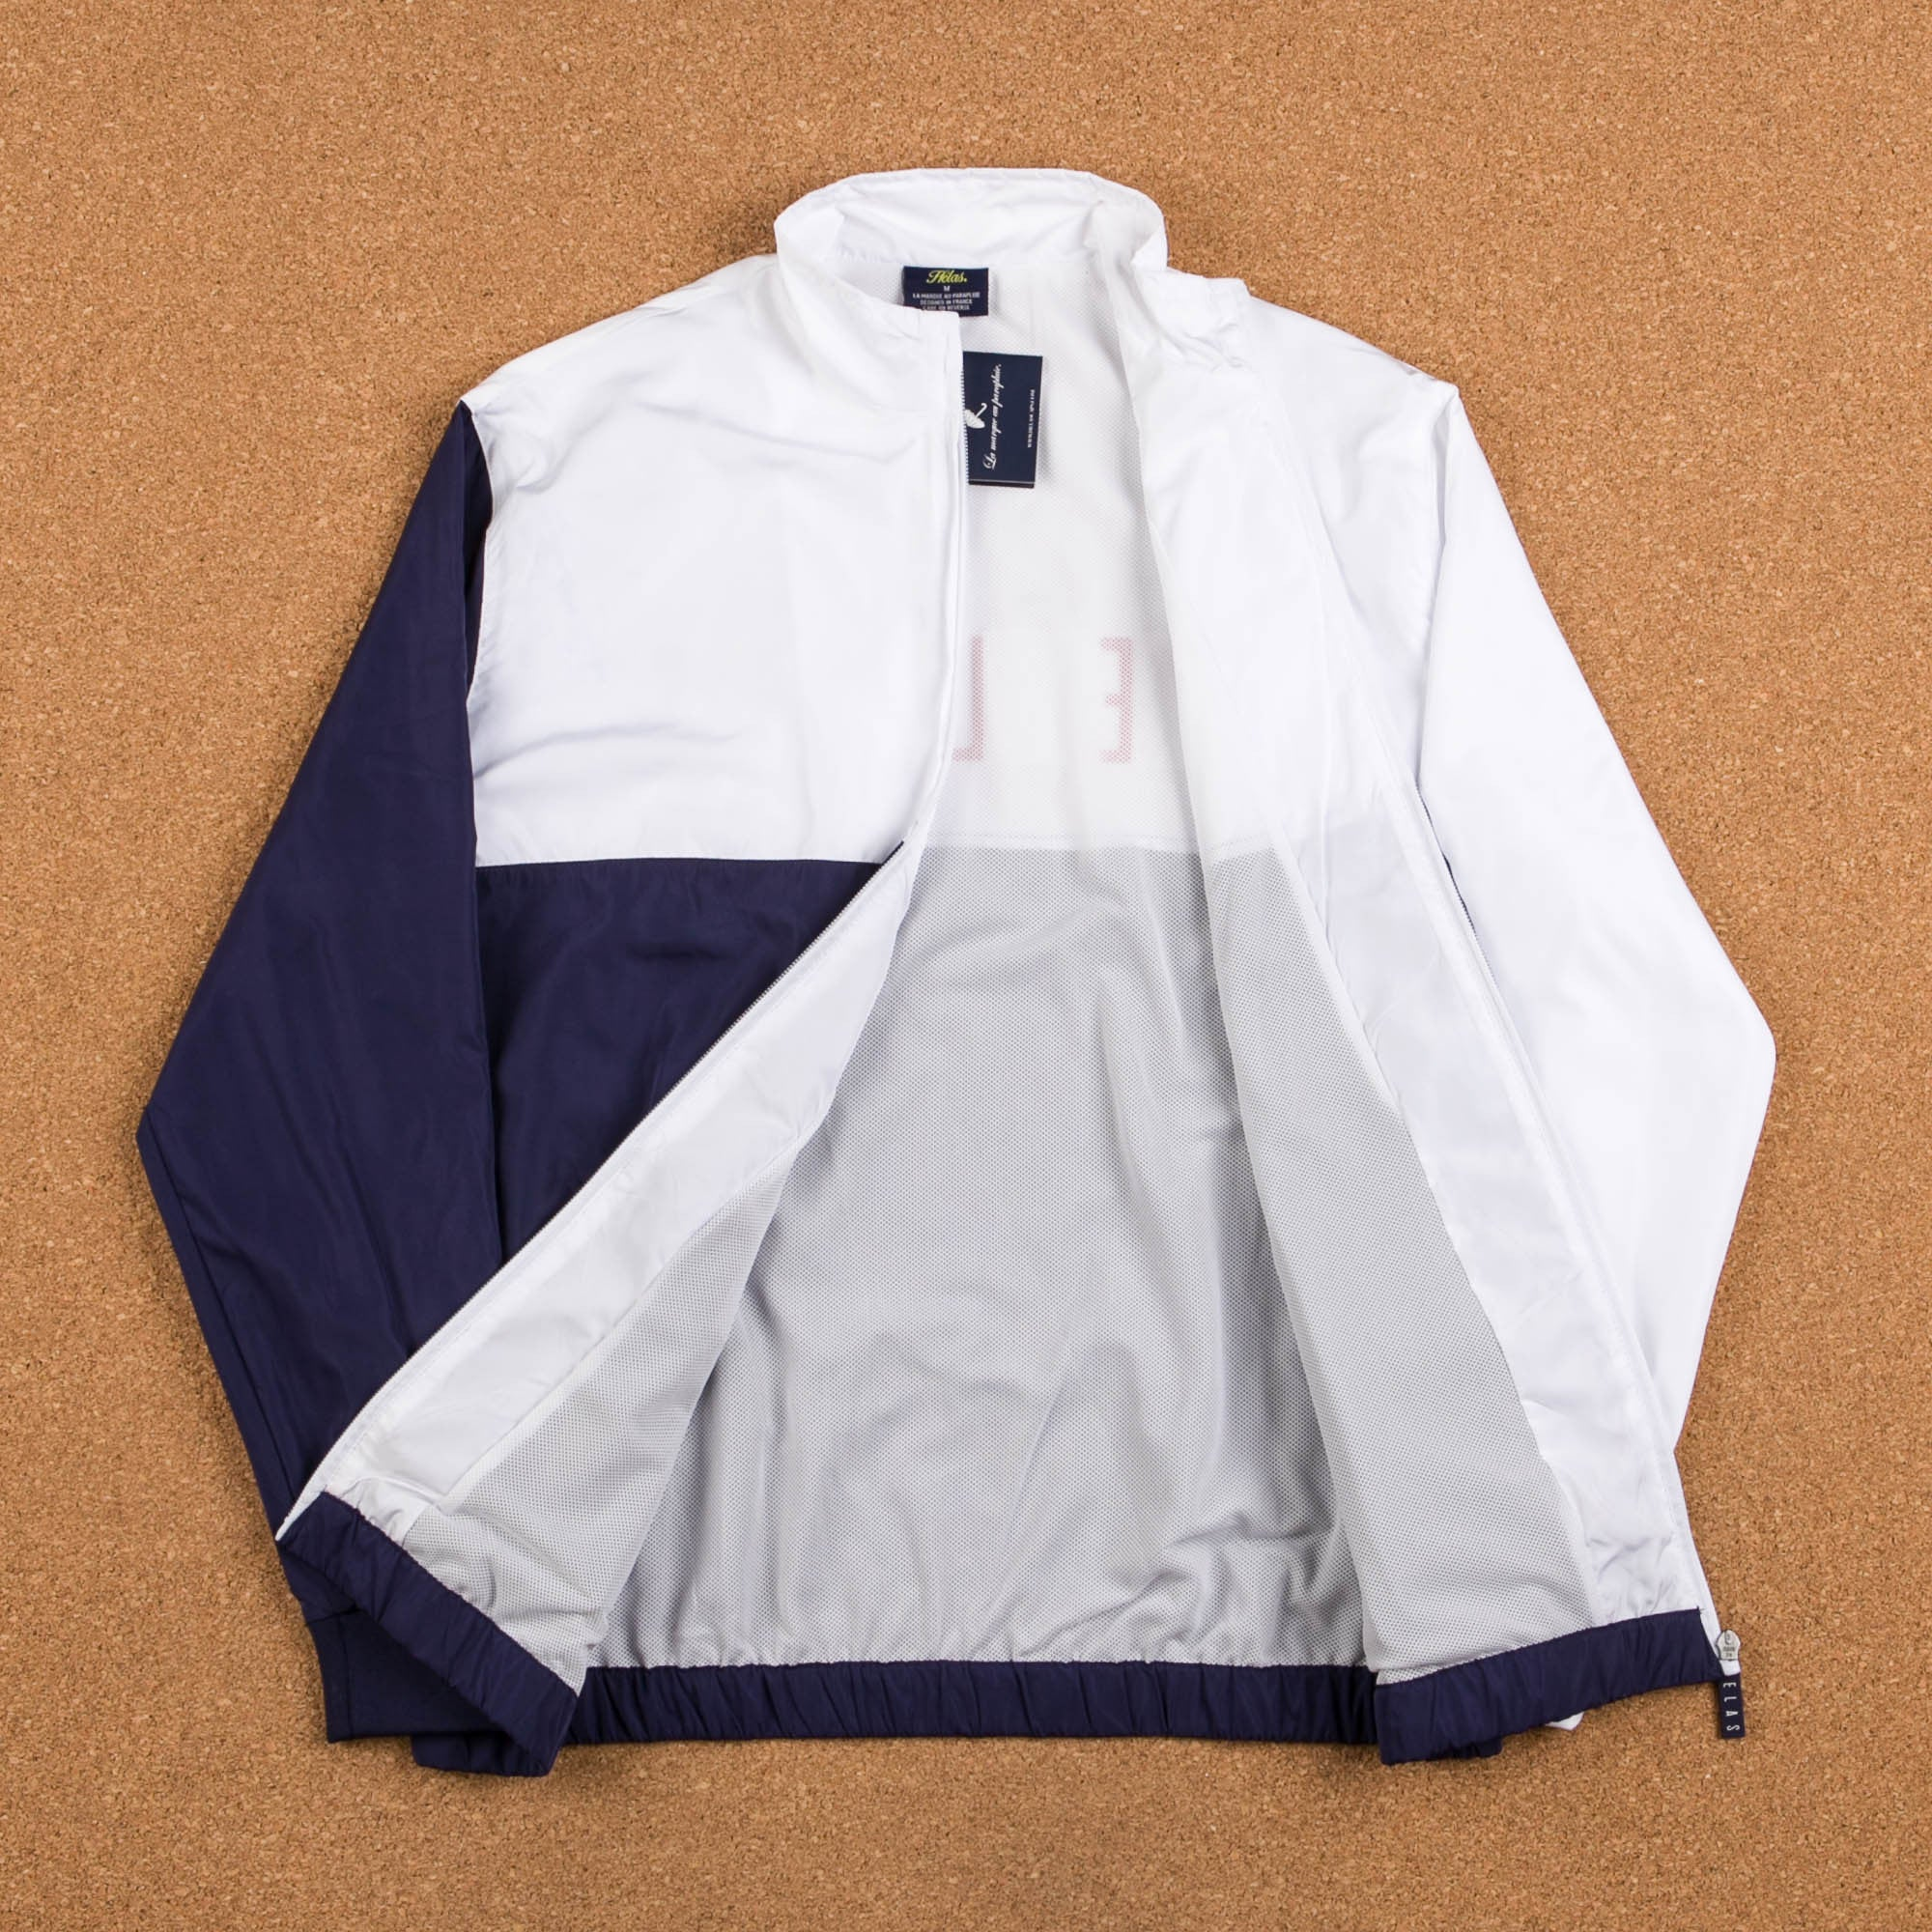 Helas S.U.T Jacket - Navy Blue / White